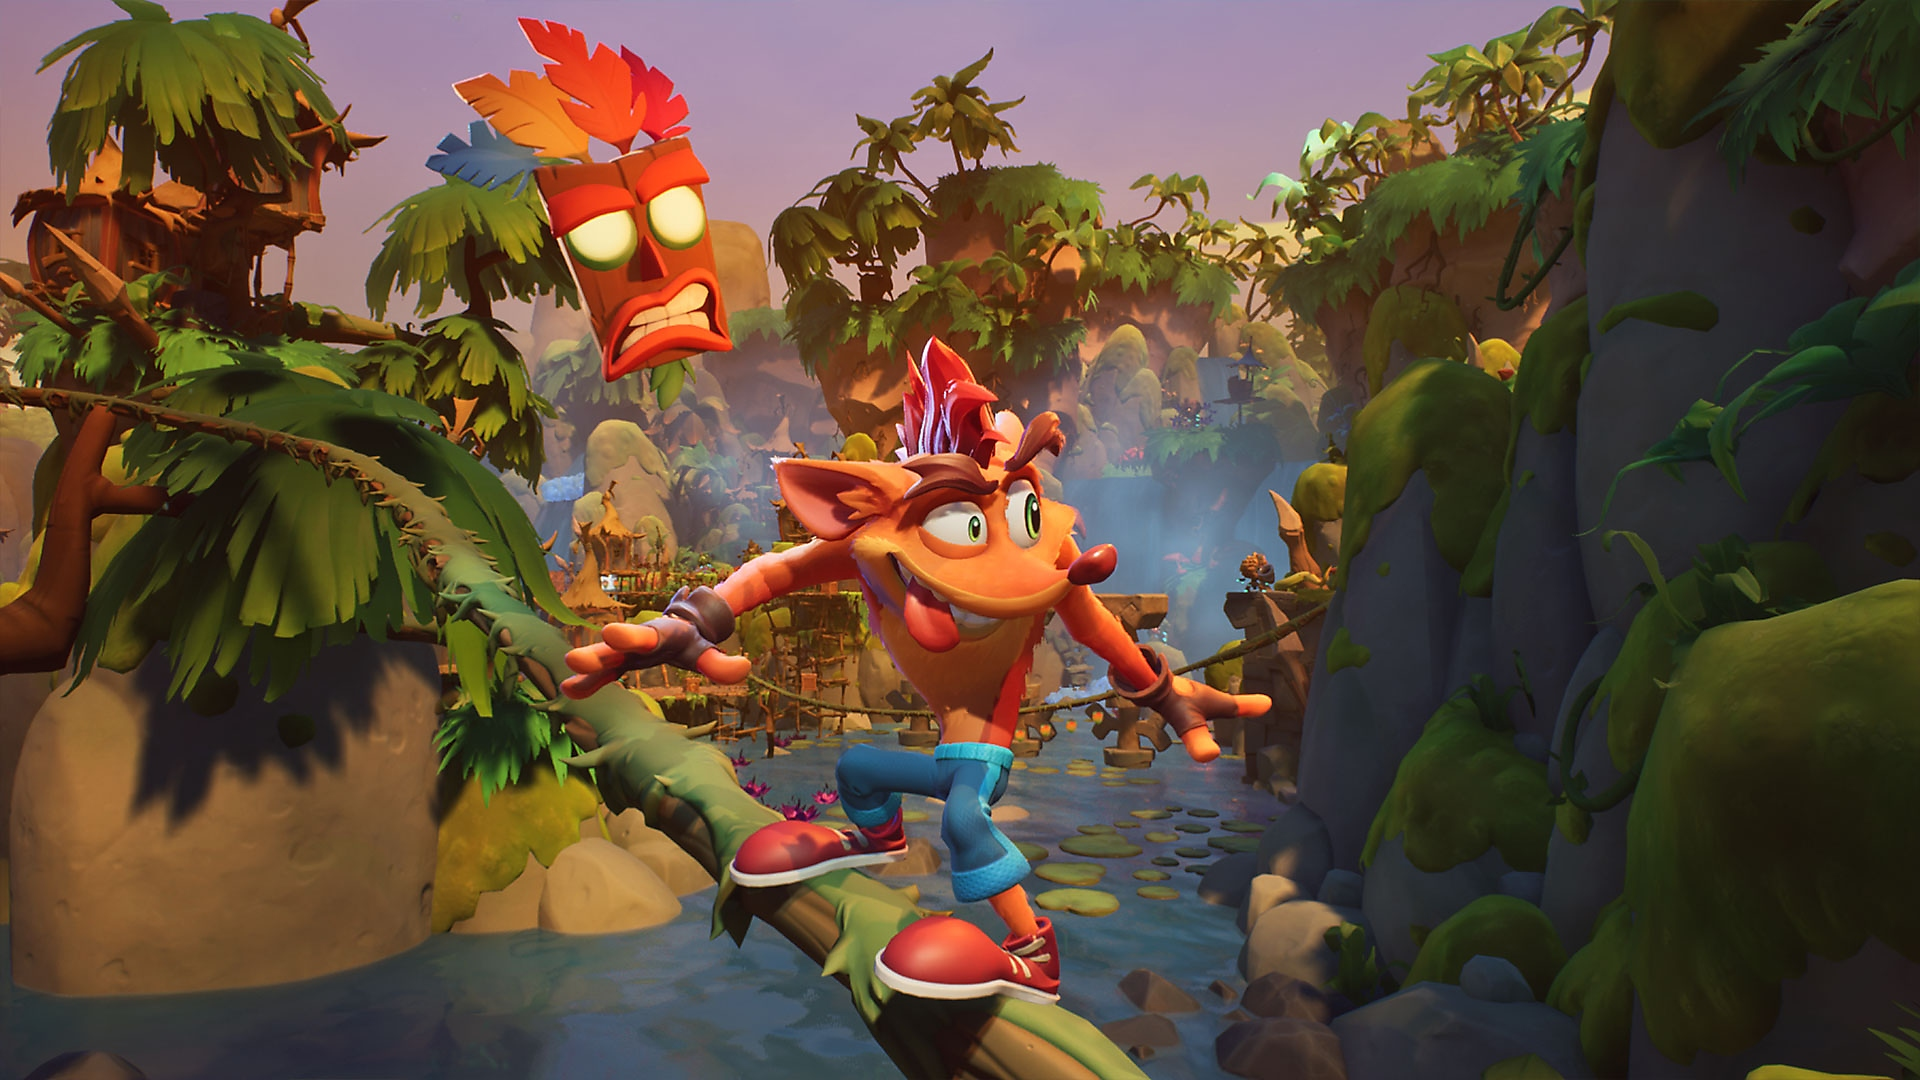 Crash Bandicoot 4: It's About Time – Bemutató képernyőkép